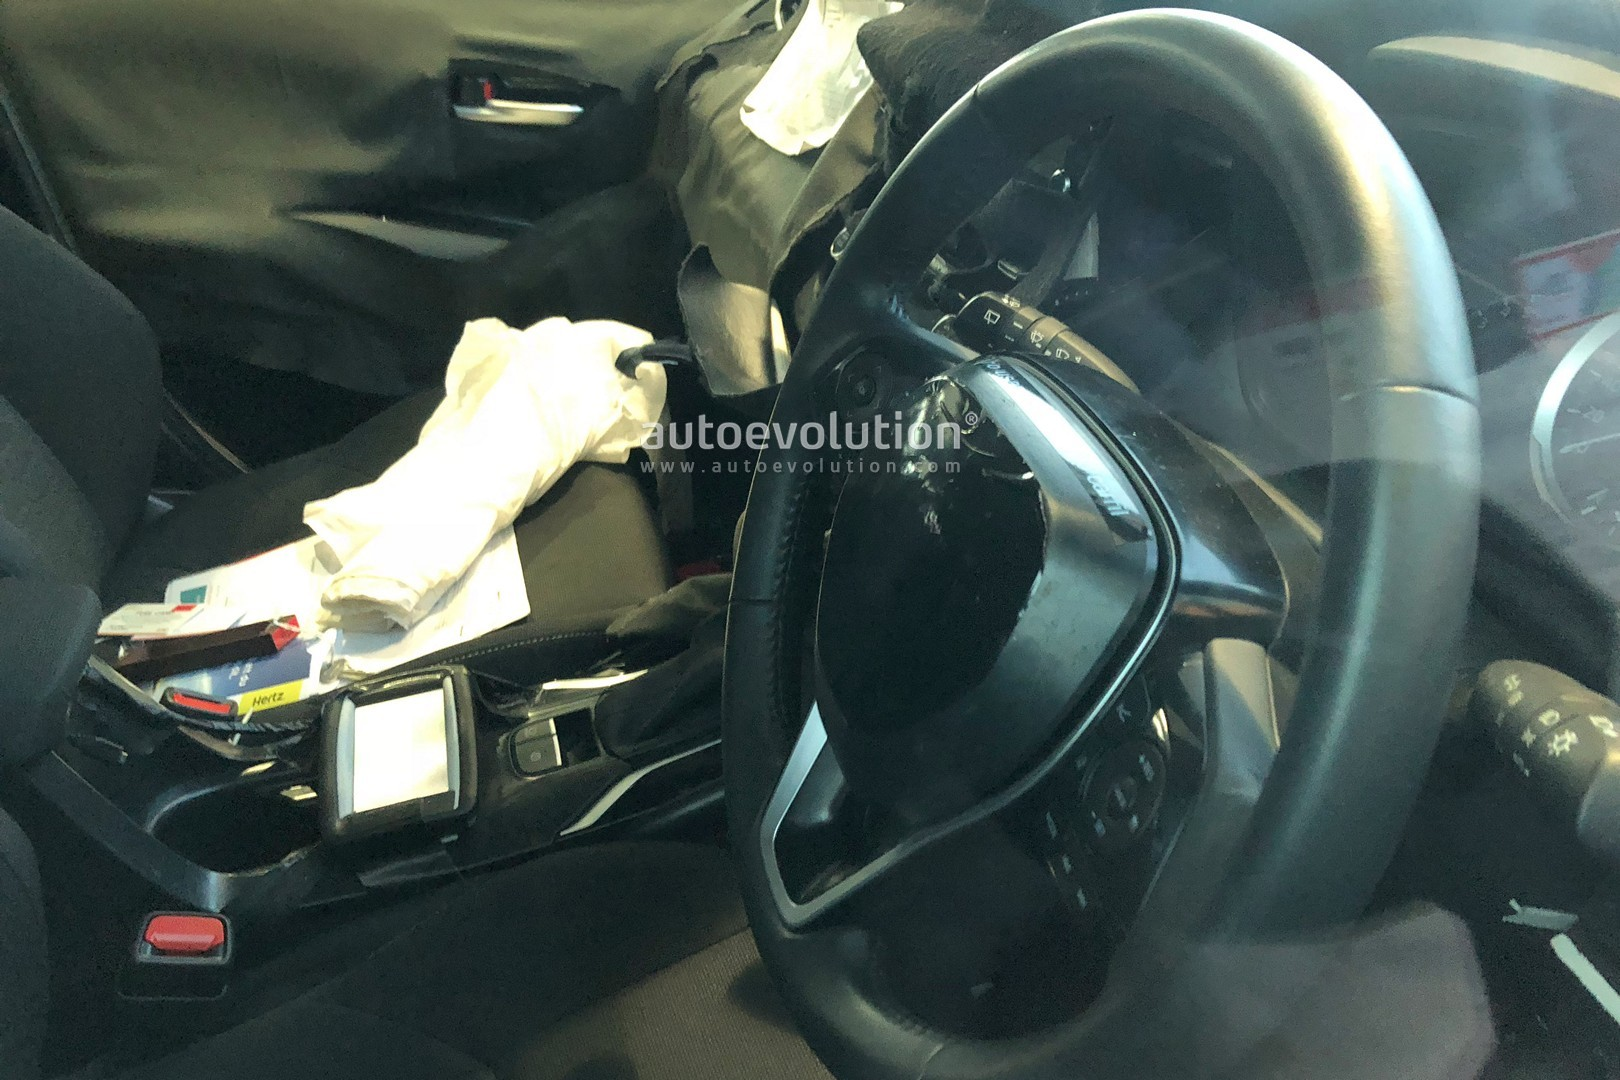 2019-toyota-auris-reveals-new-interior-and-angular-design-in-latest-spyshots_1.jpg